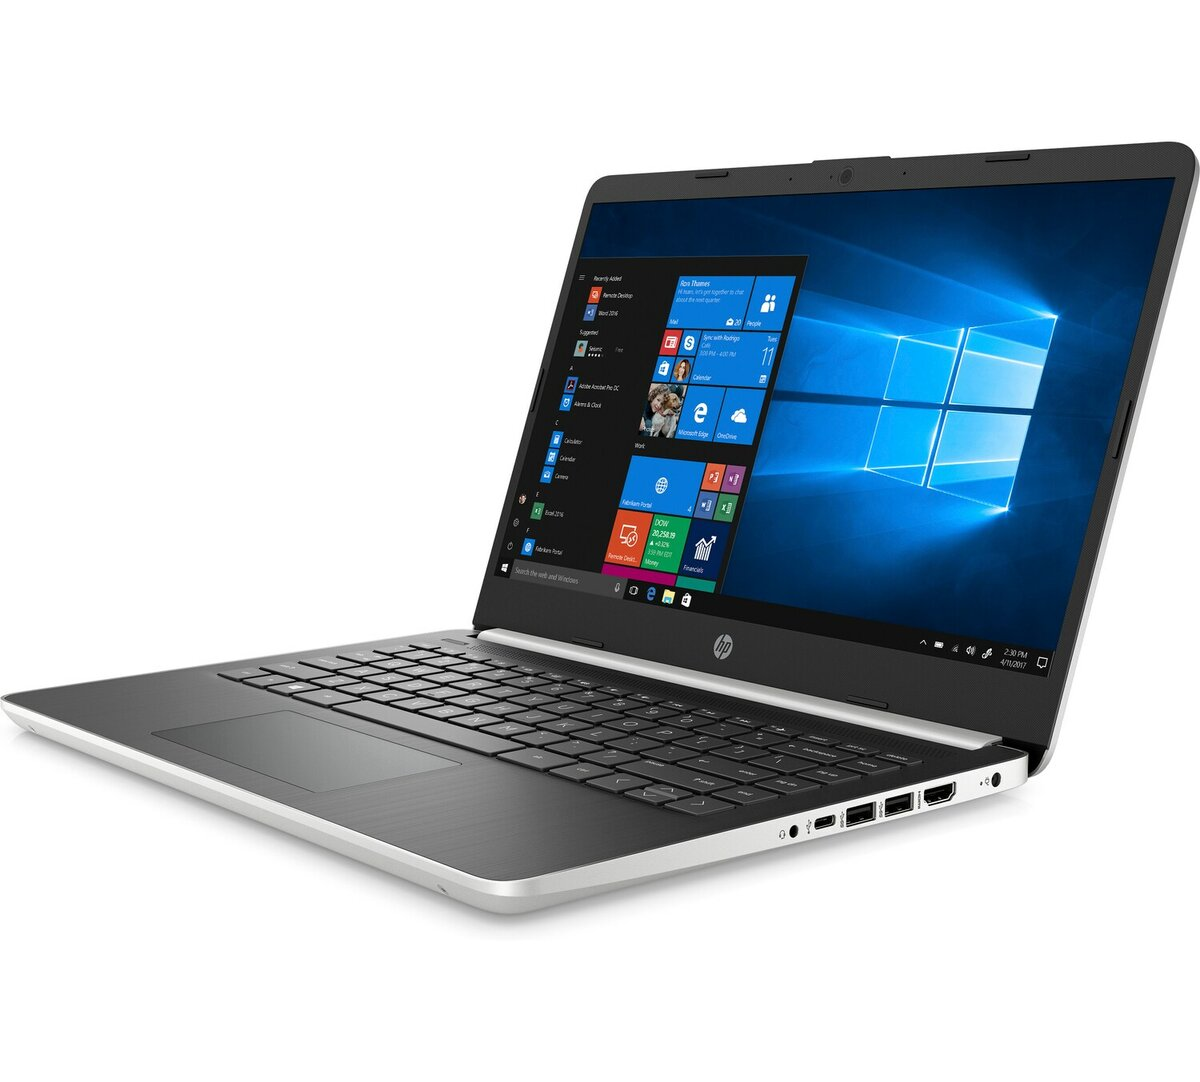 Hp Pavilion X360 14 Dh2075nr 2 In 1 Laptop Intel Core I5 1035g1 1 00 Ghz 14 Windows 10 Home 64 Bit Newegg Com